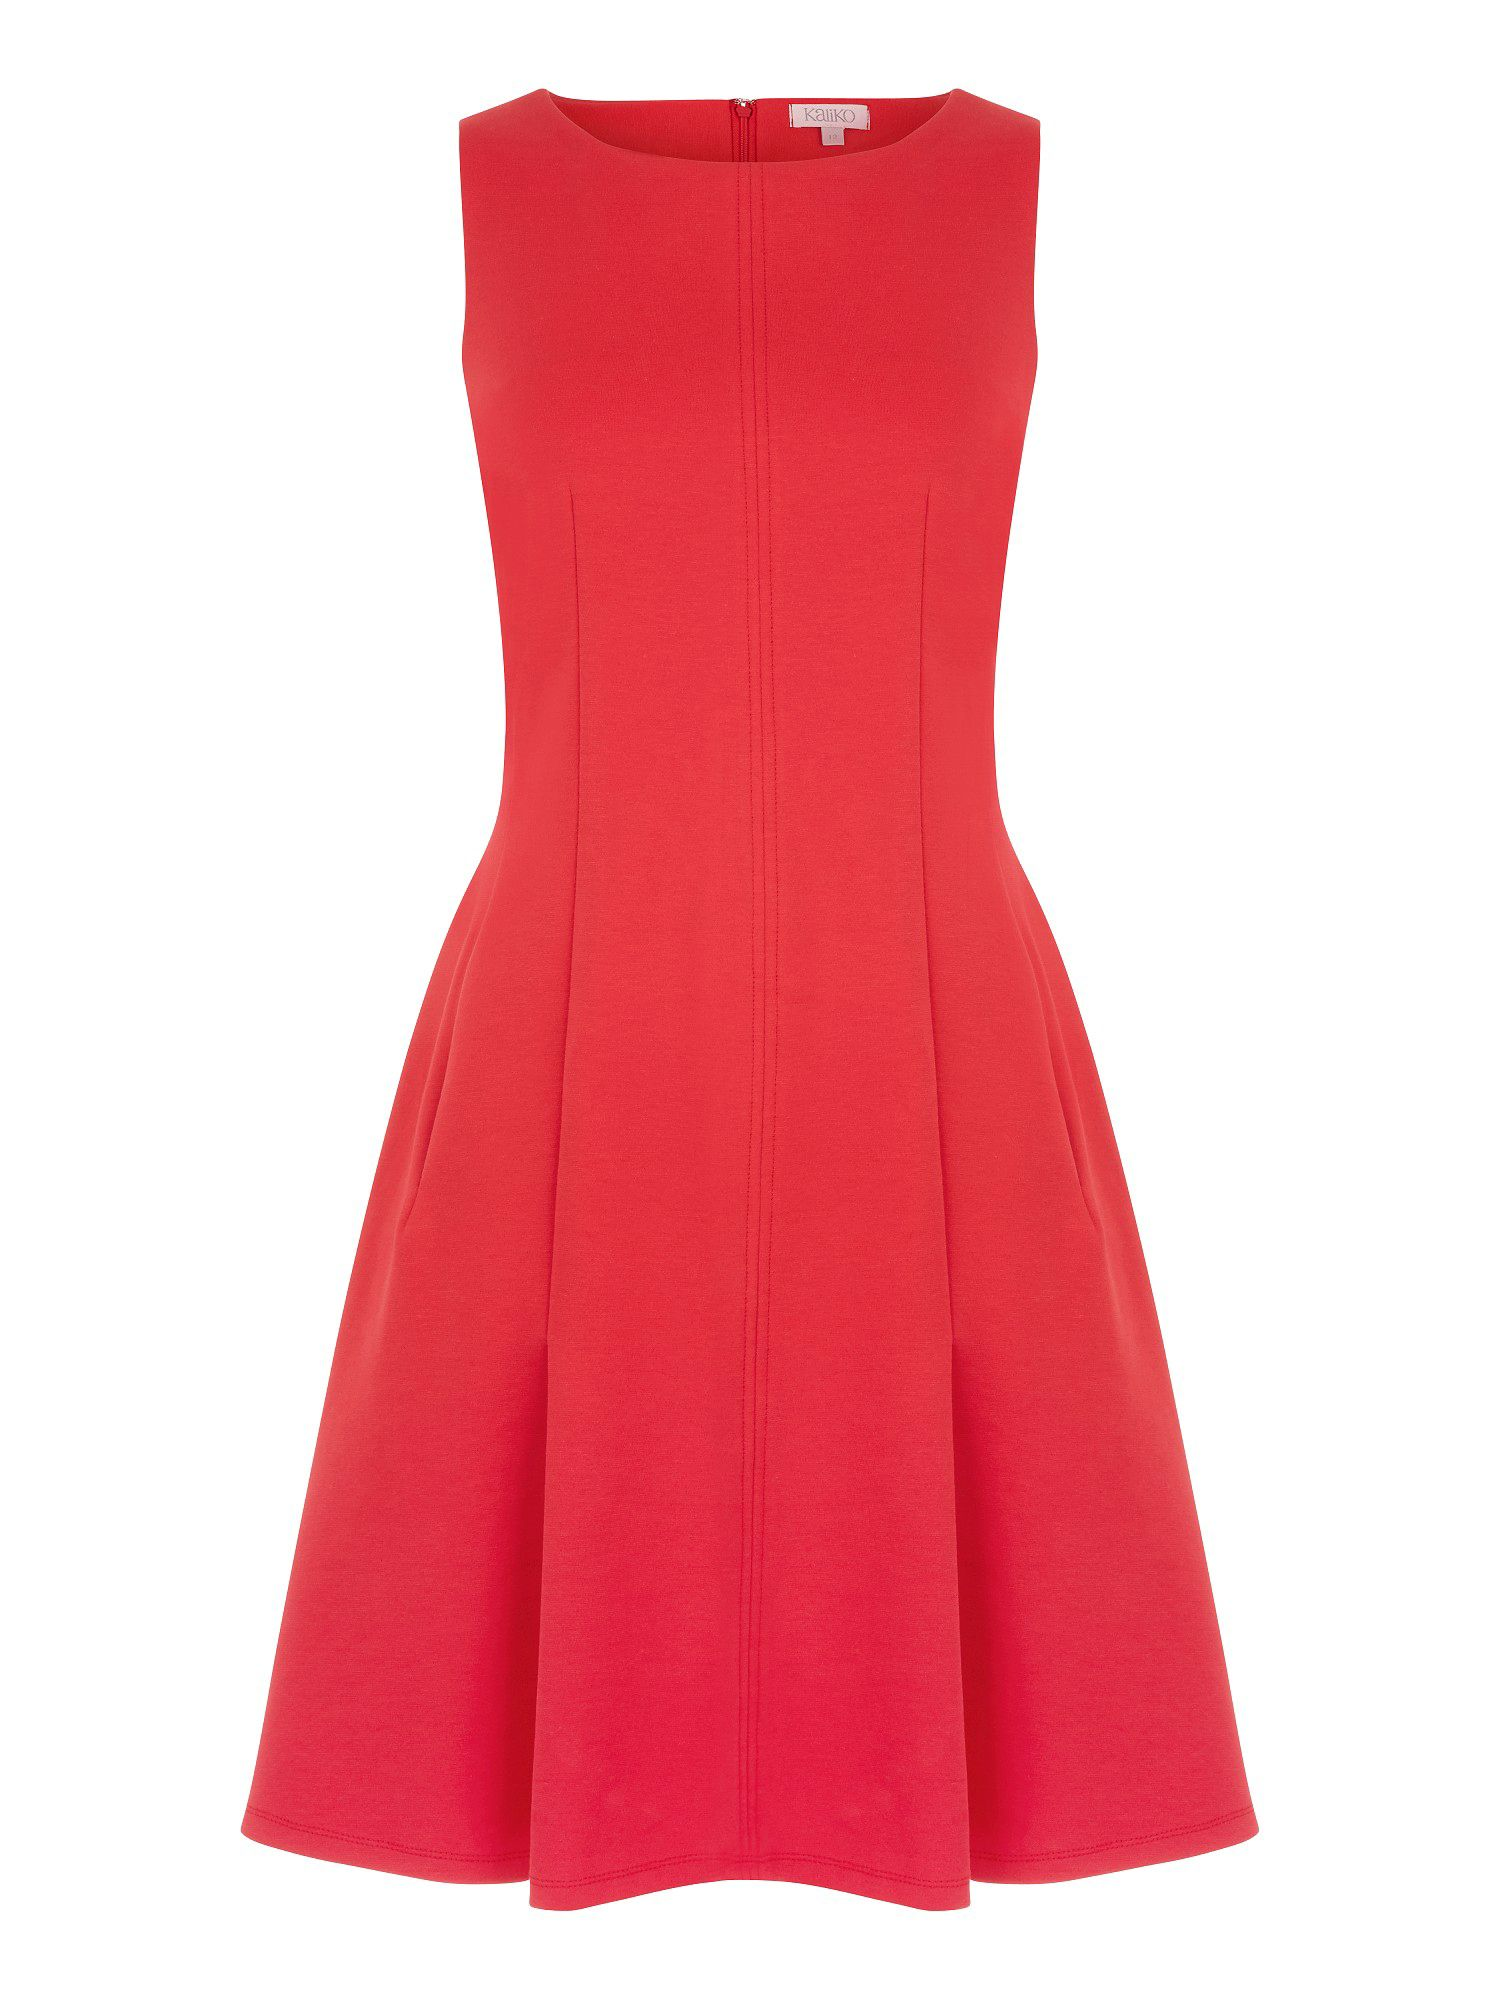 Poppy sculptured dress